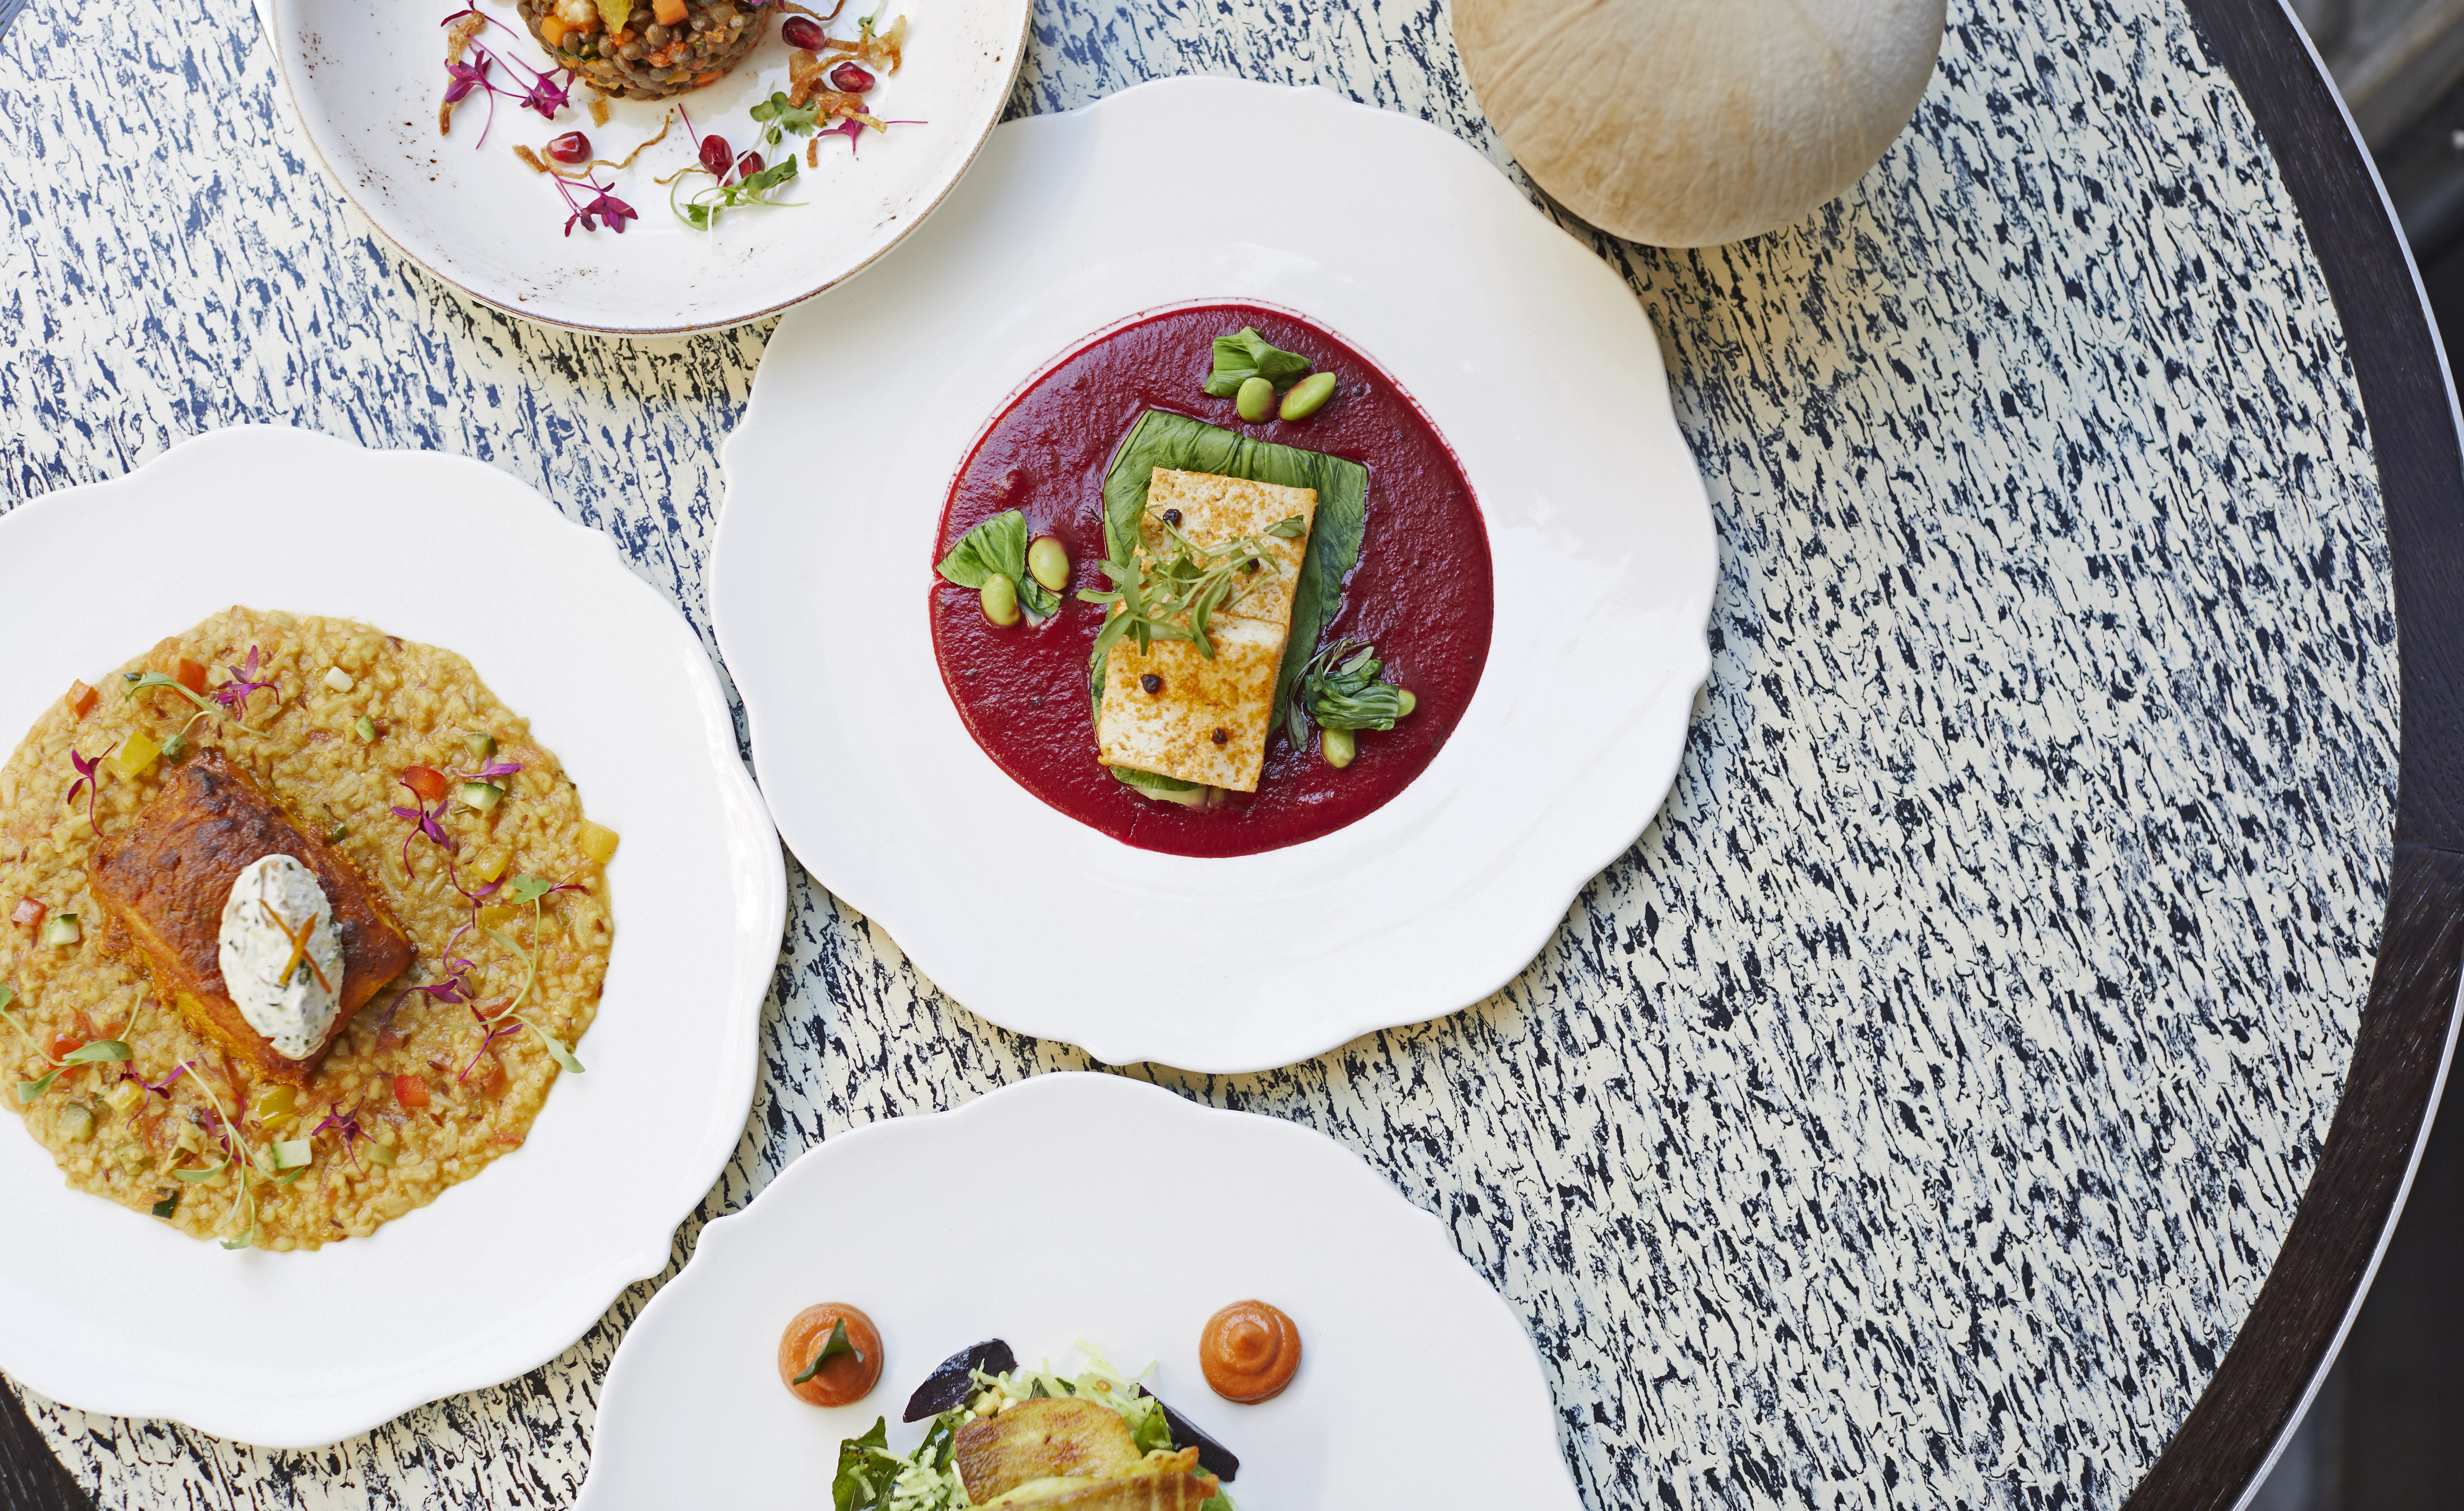 Stretch Yourself with an Exclusive Yoga Class and Brunch